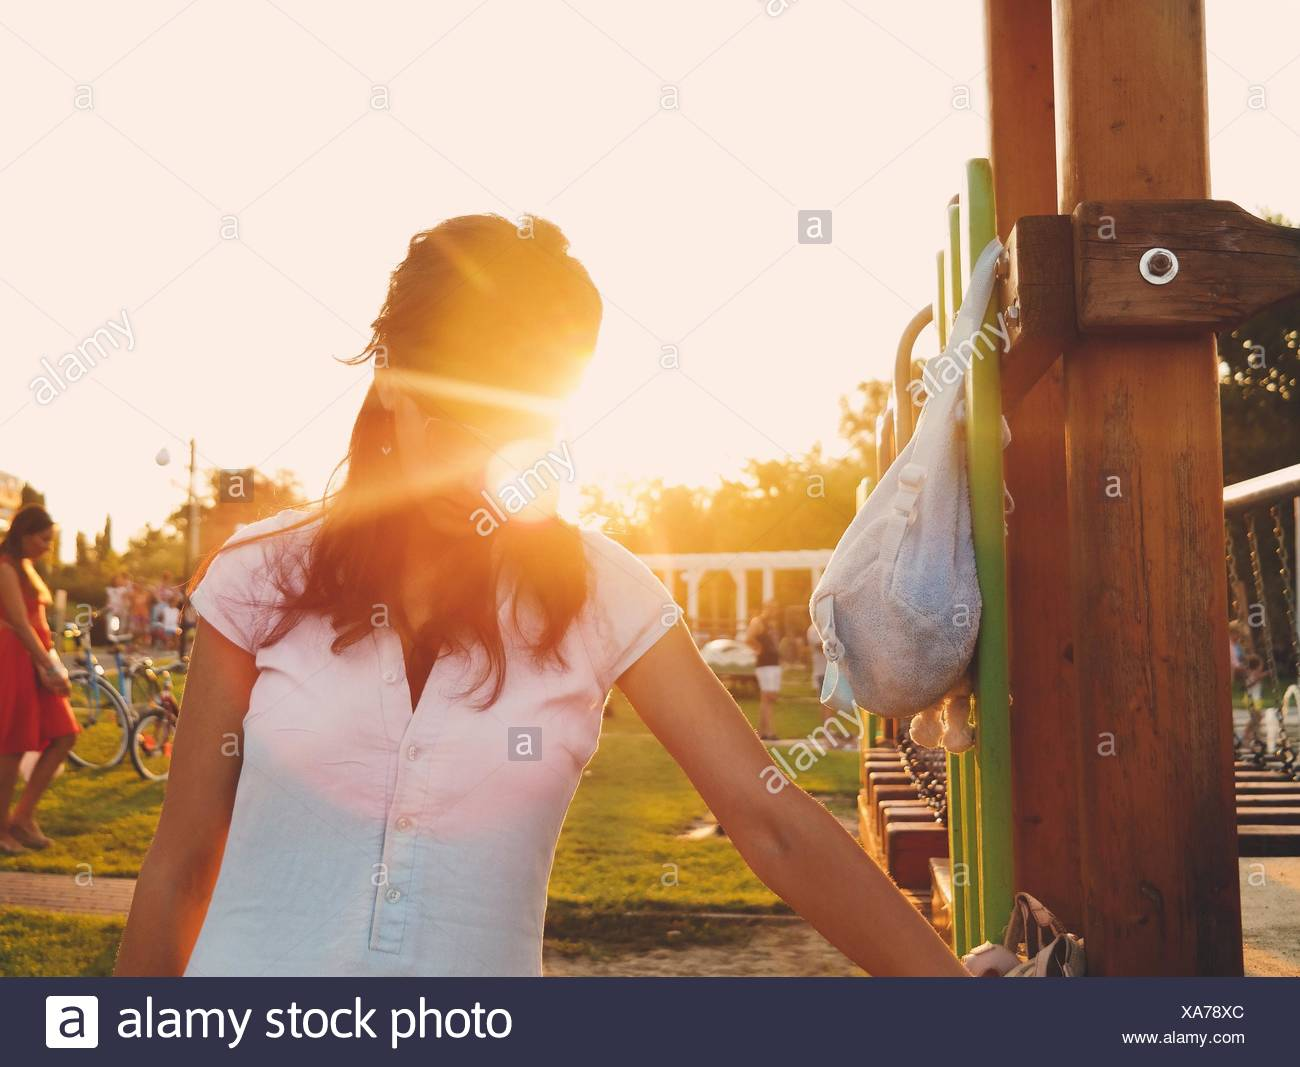 Woman Standing In Park contre Ciel sur Sunny Day Photo Stock